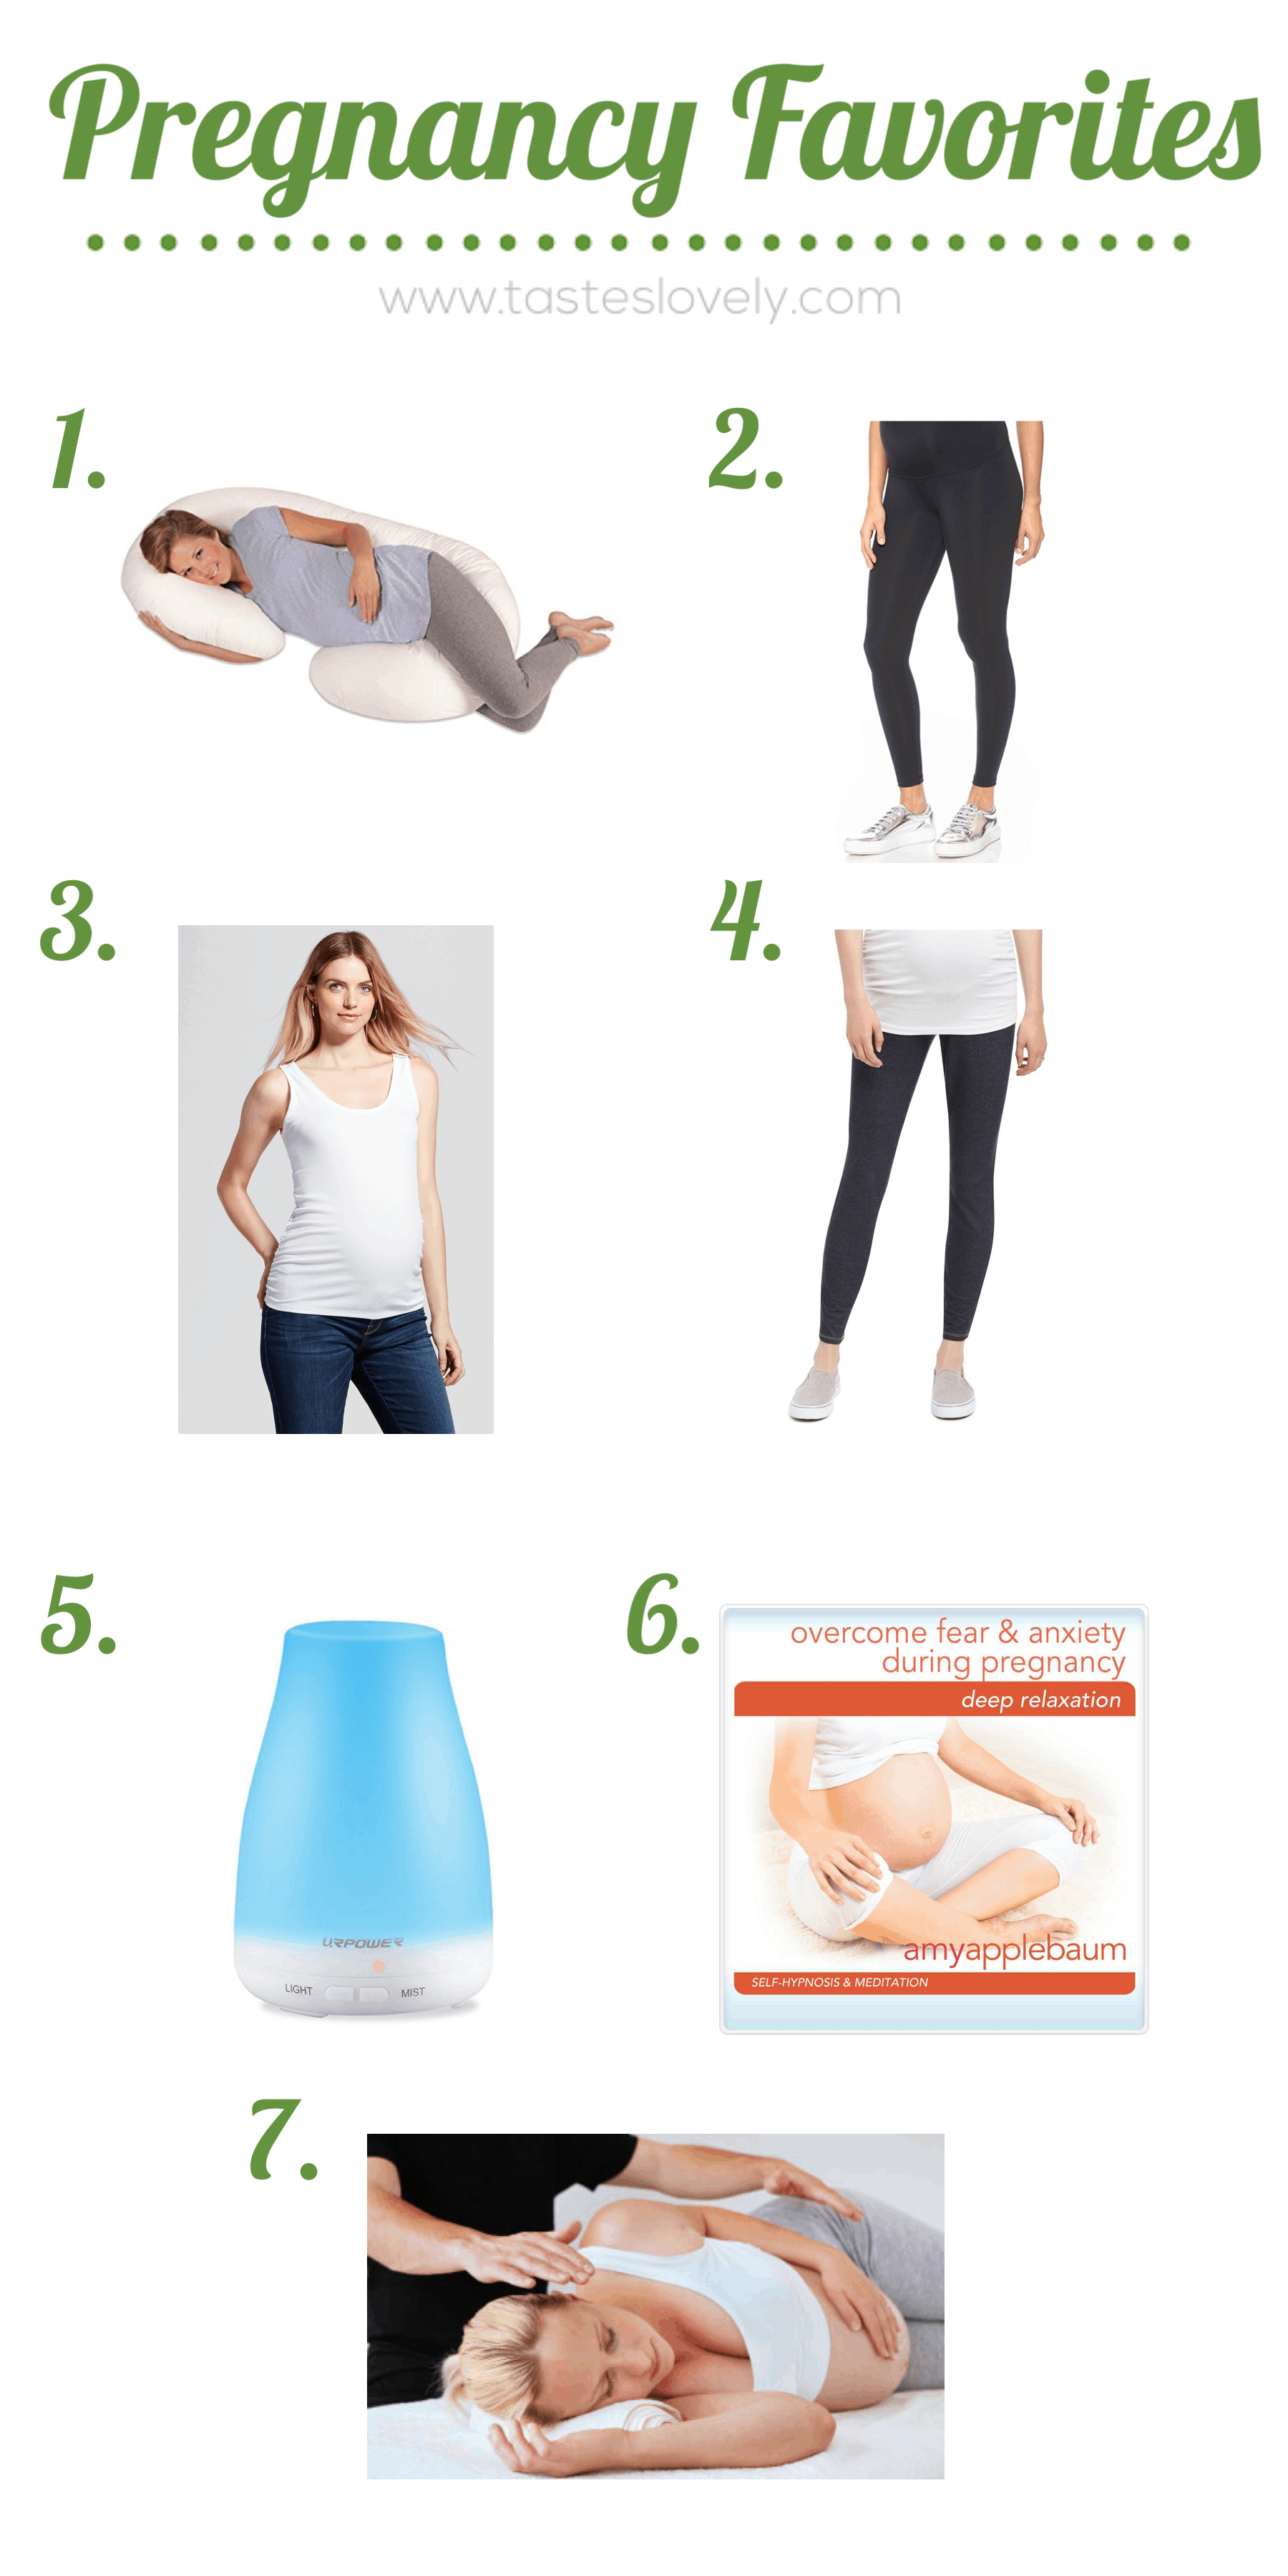 Pregnancy Favorites